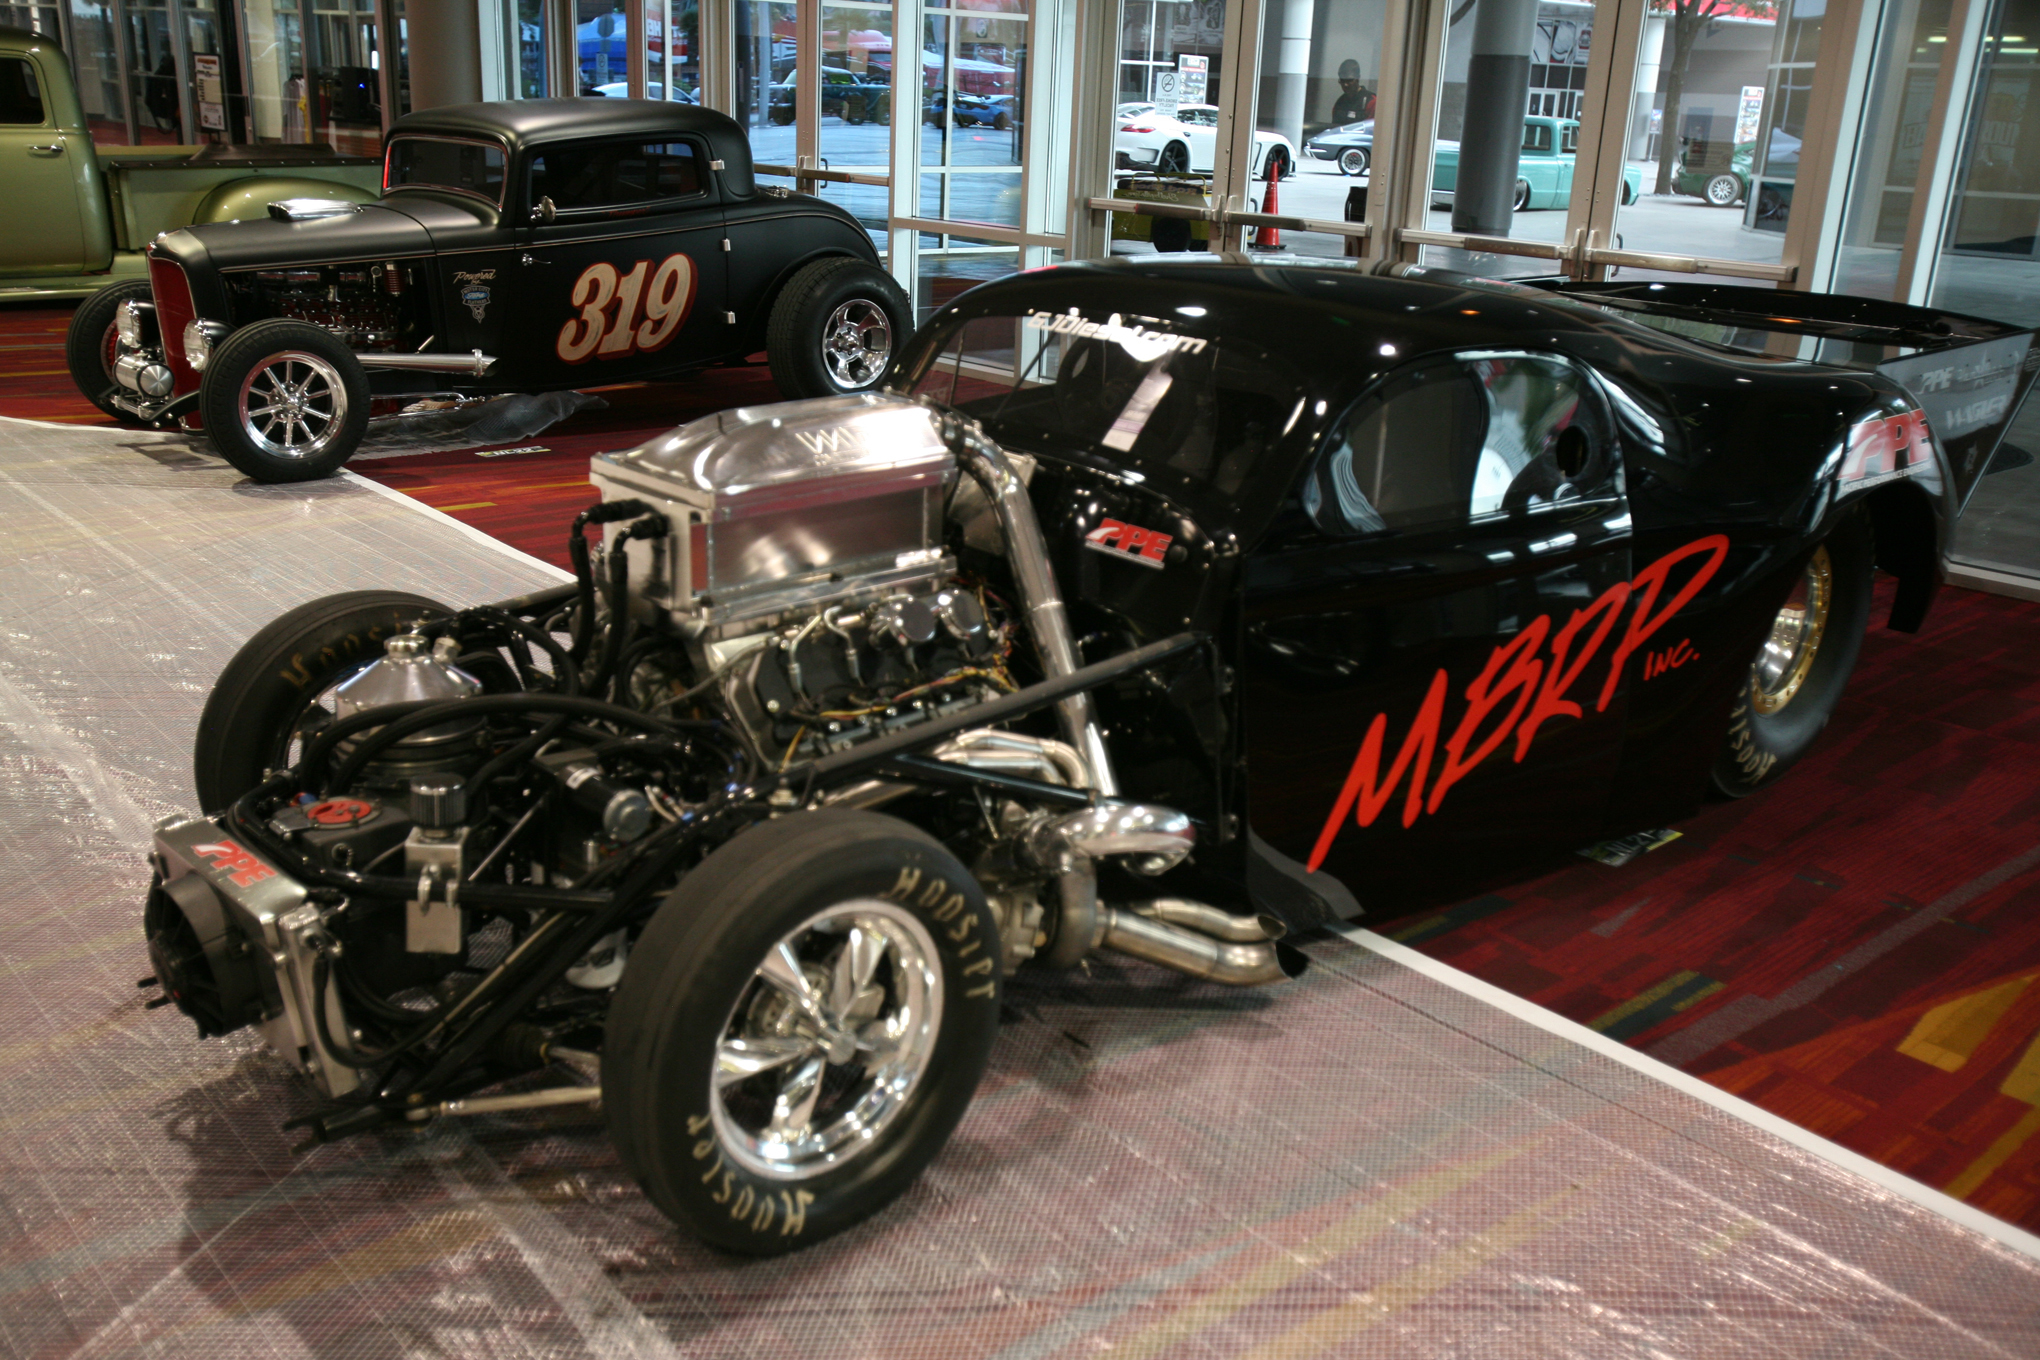 Hot Rod\'s Top 10 Automotive Trends From the 2014 SEMA Show - Motor Trend